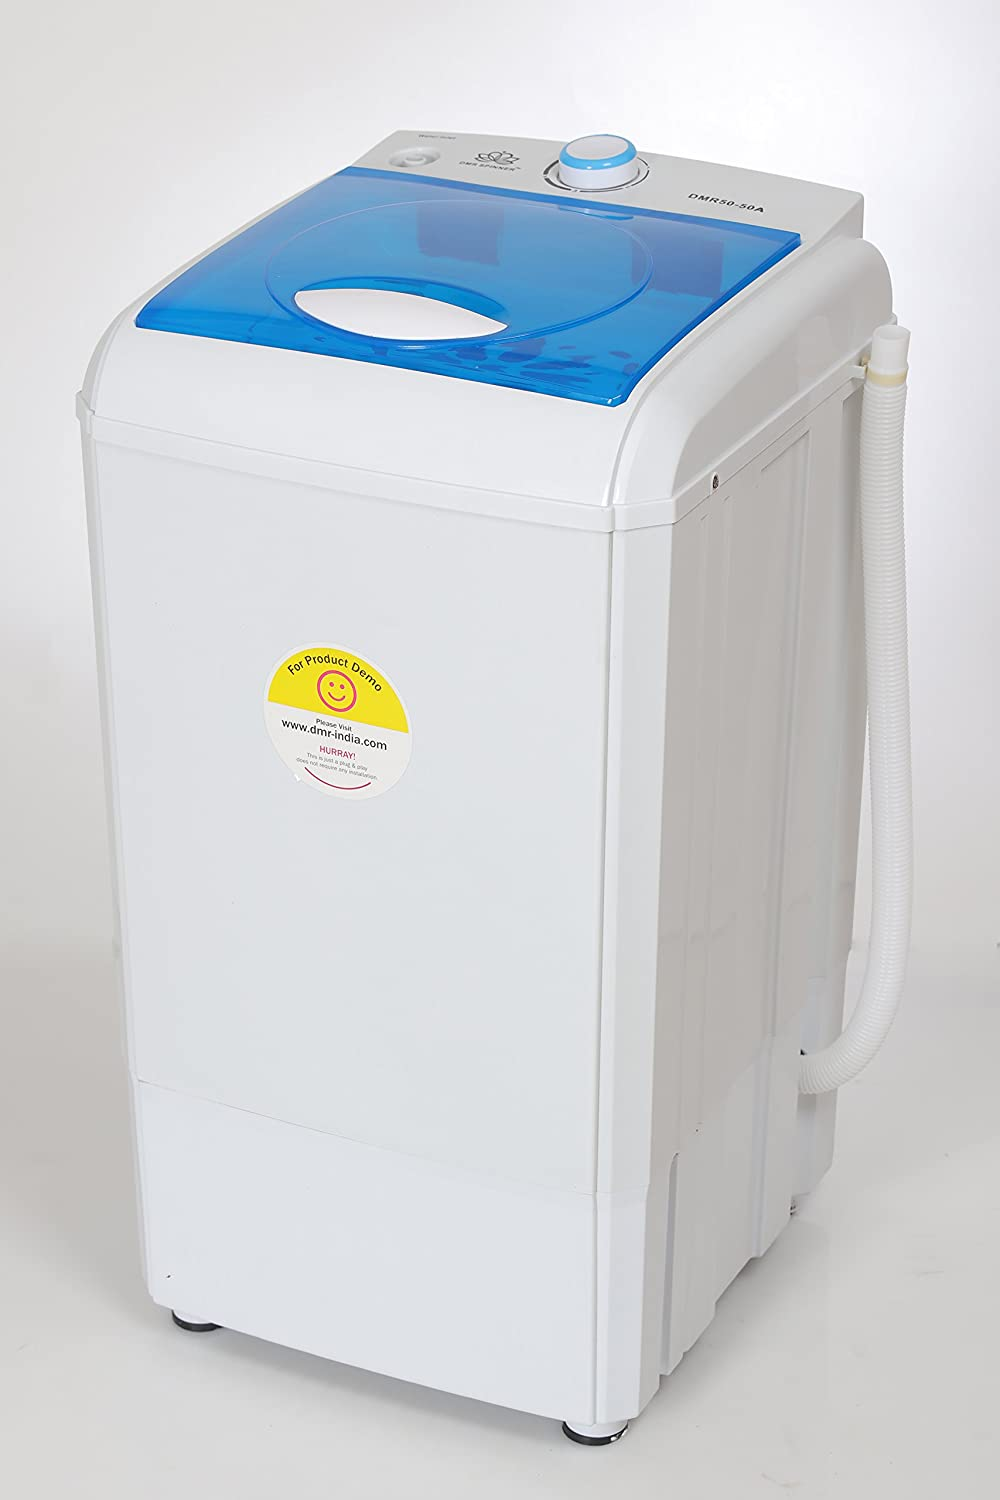 Dmr 50 50a Semi Automatic 5 Kg Spin Dryer Only Drying No Washing Amazon In Home Kitchen